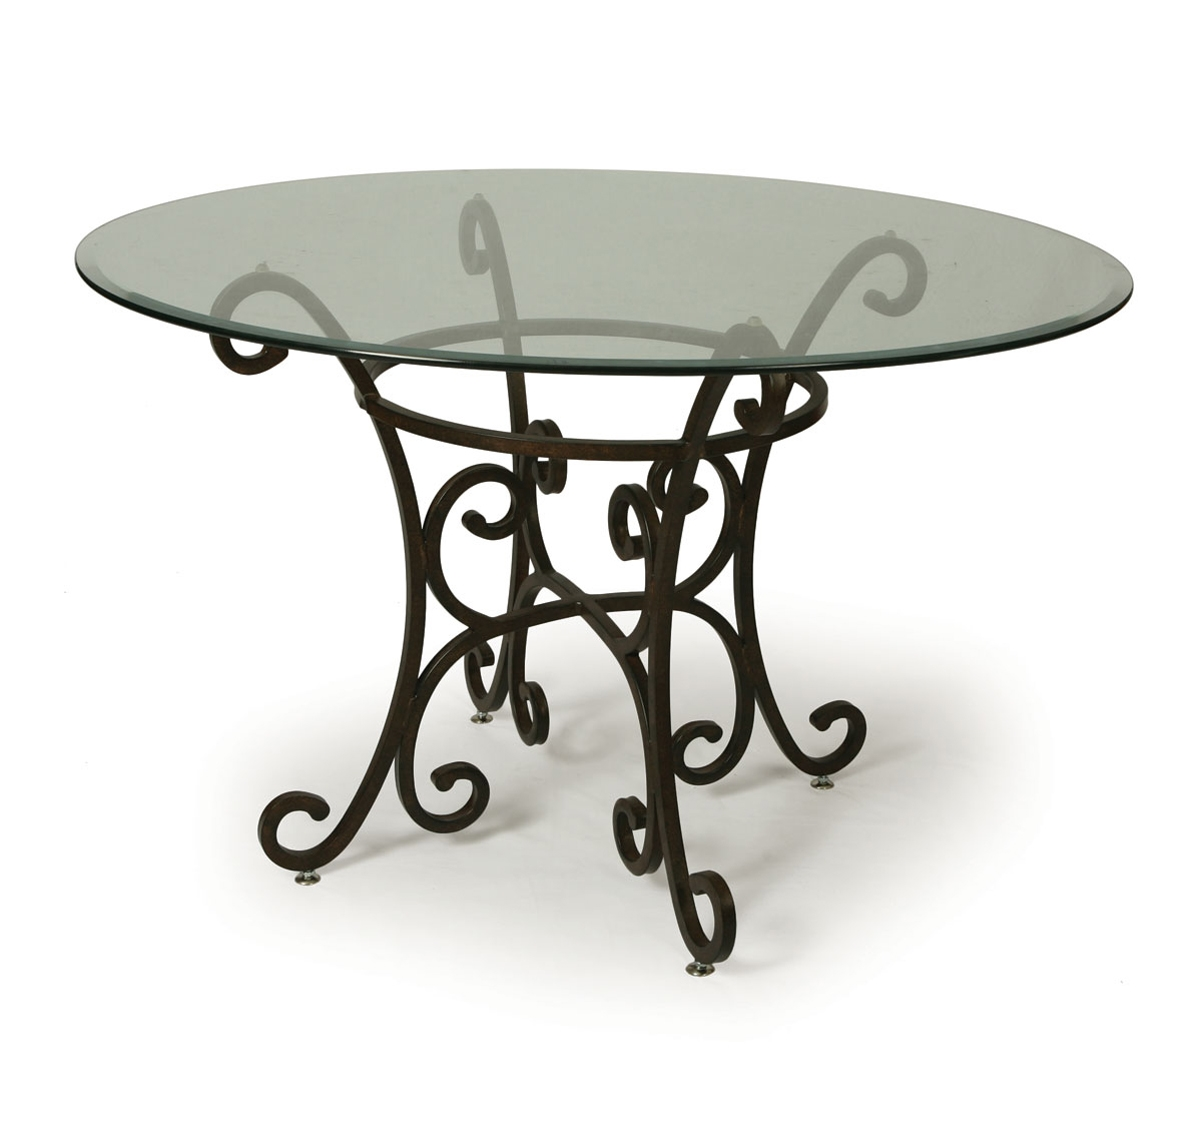 Pastel Magnolia 48 Inch Round Bevel Glass Dining Table in Autumn Rust